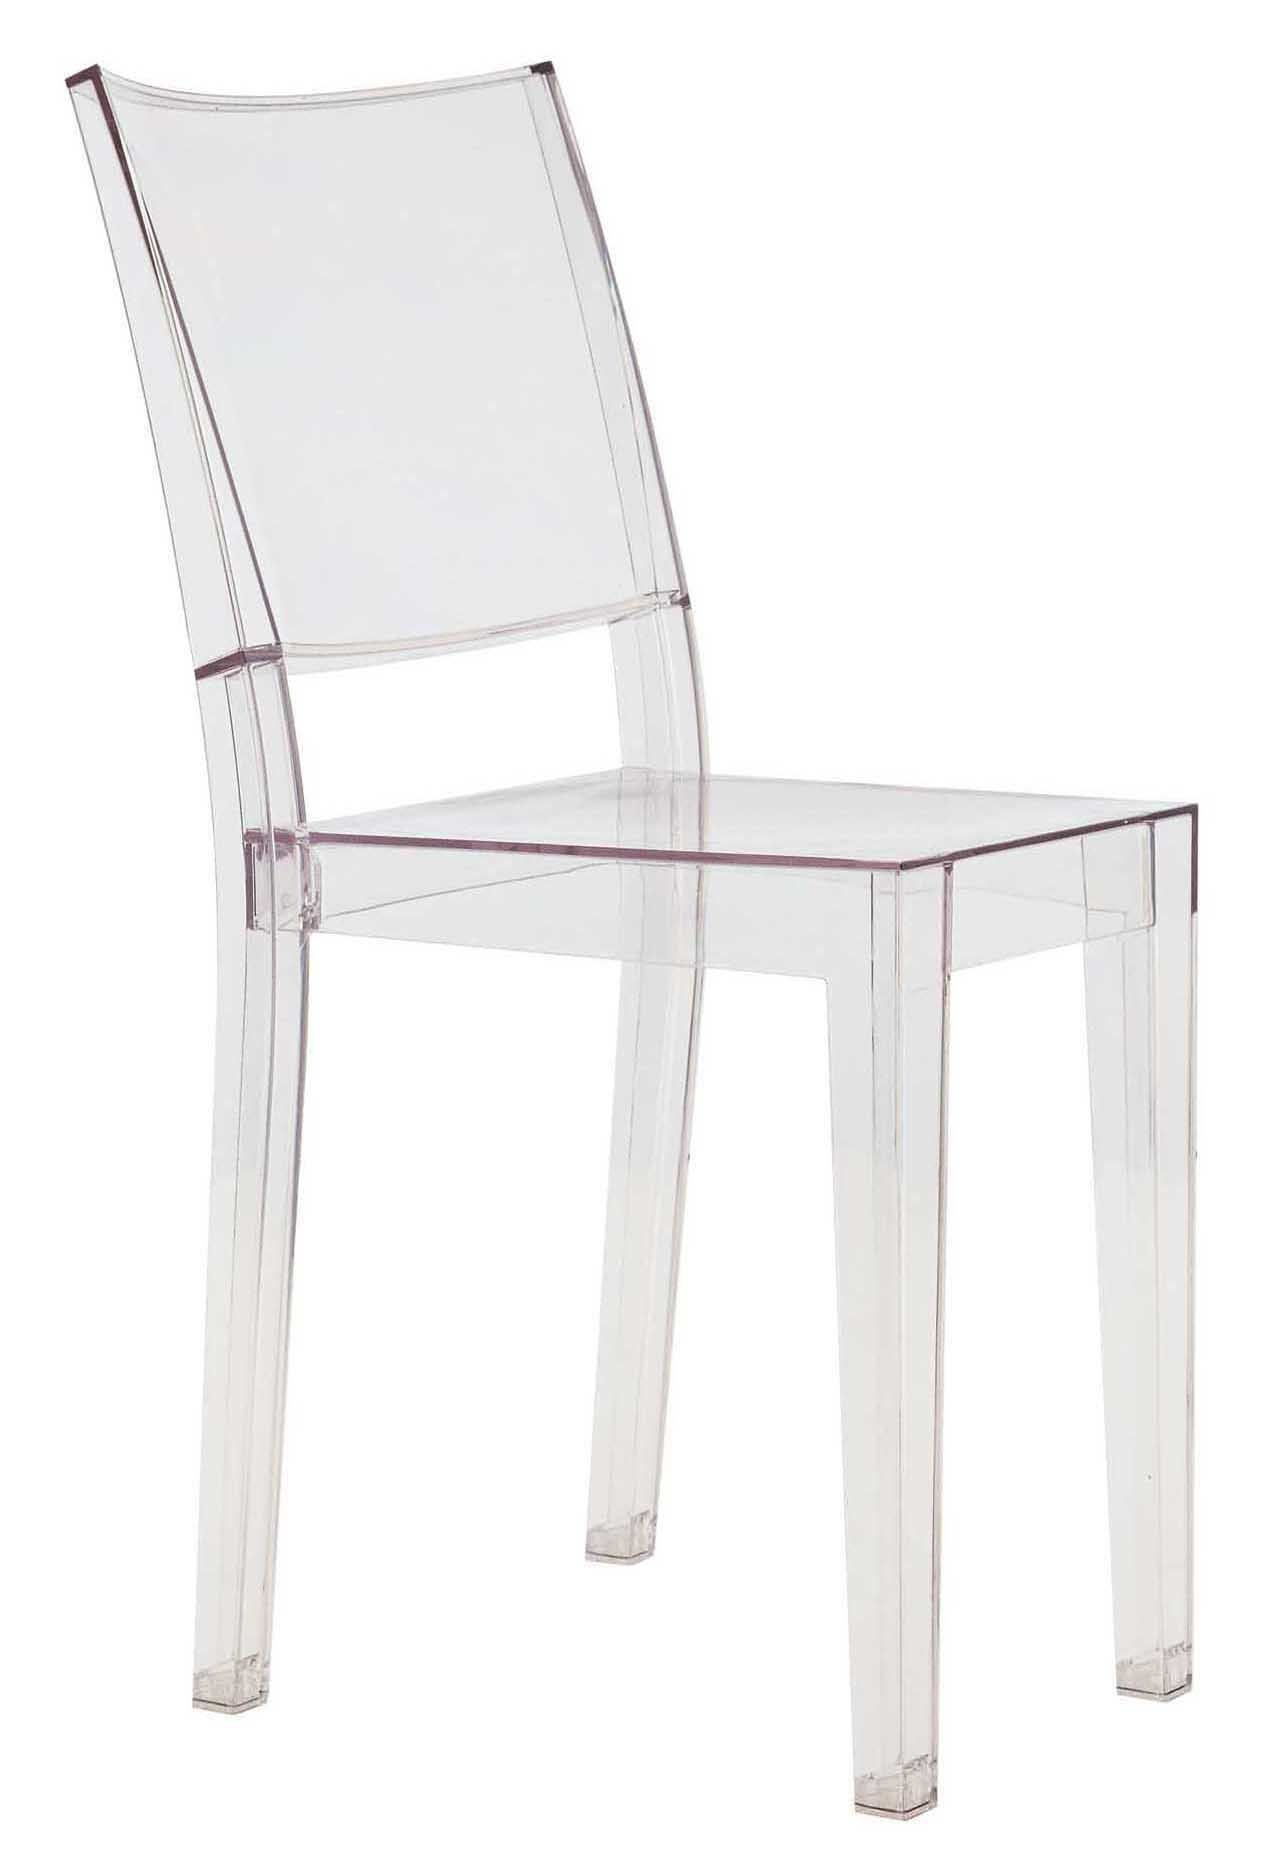 chaise empilable la marie transparente polycarbonate cristal kartell. Black Bedroom Furniture Sets. Home Design Ideas